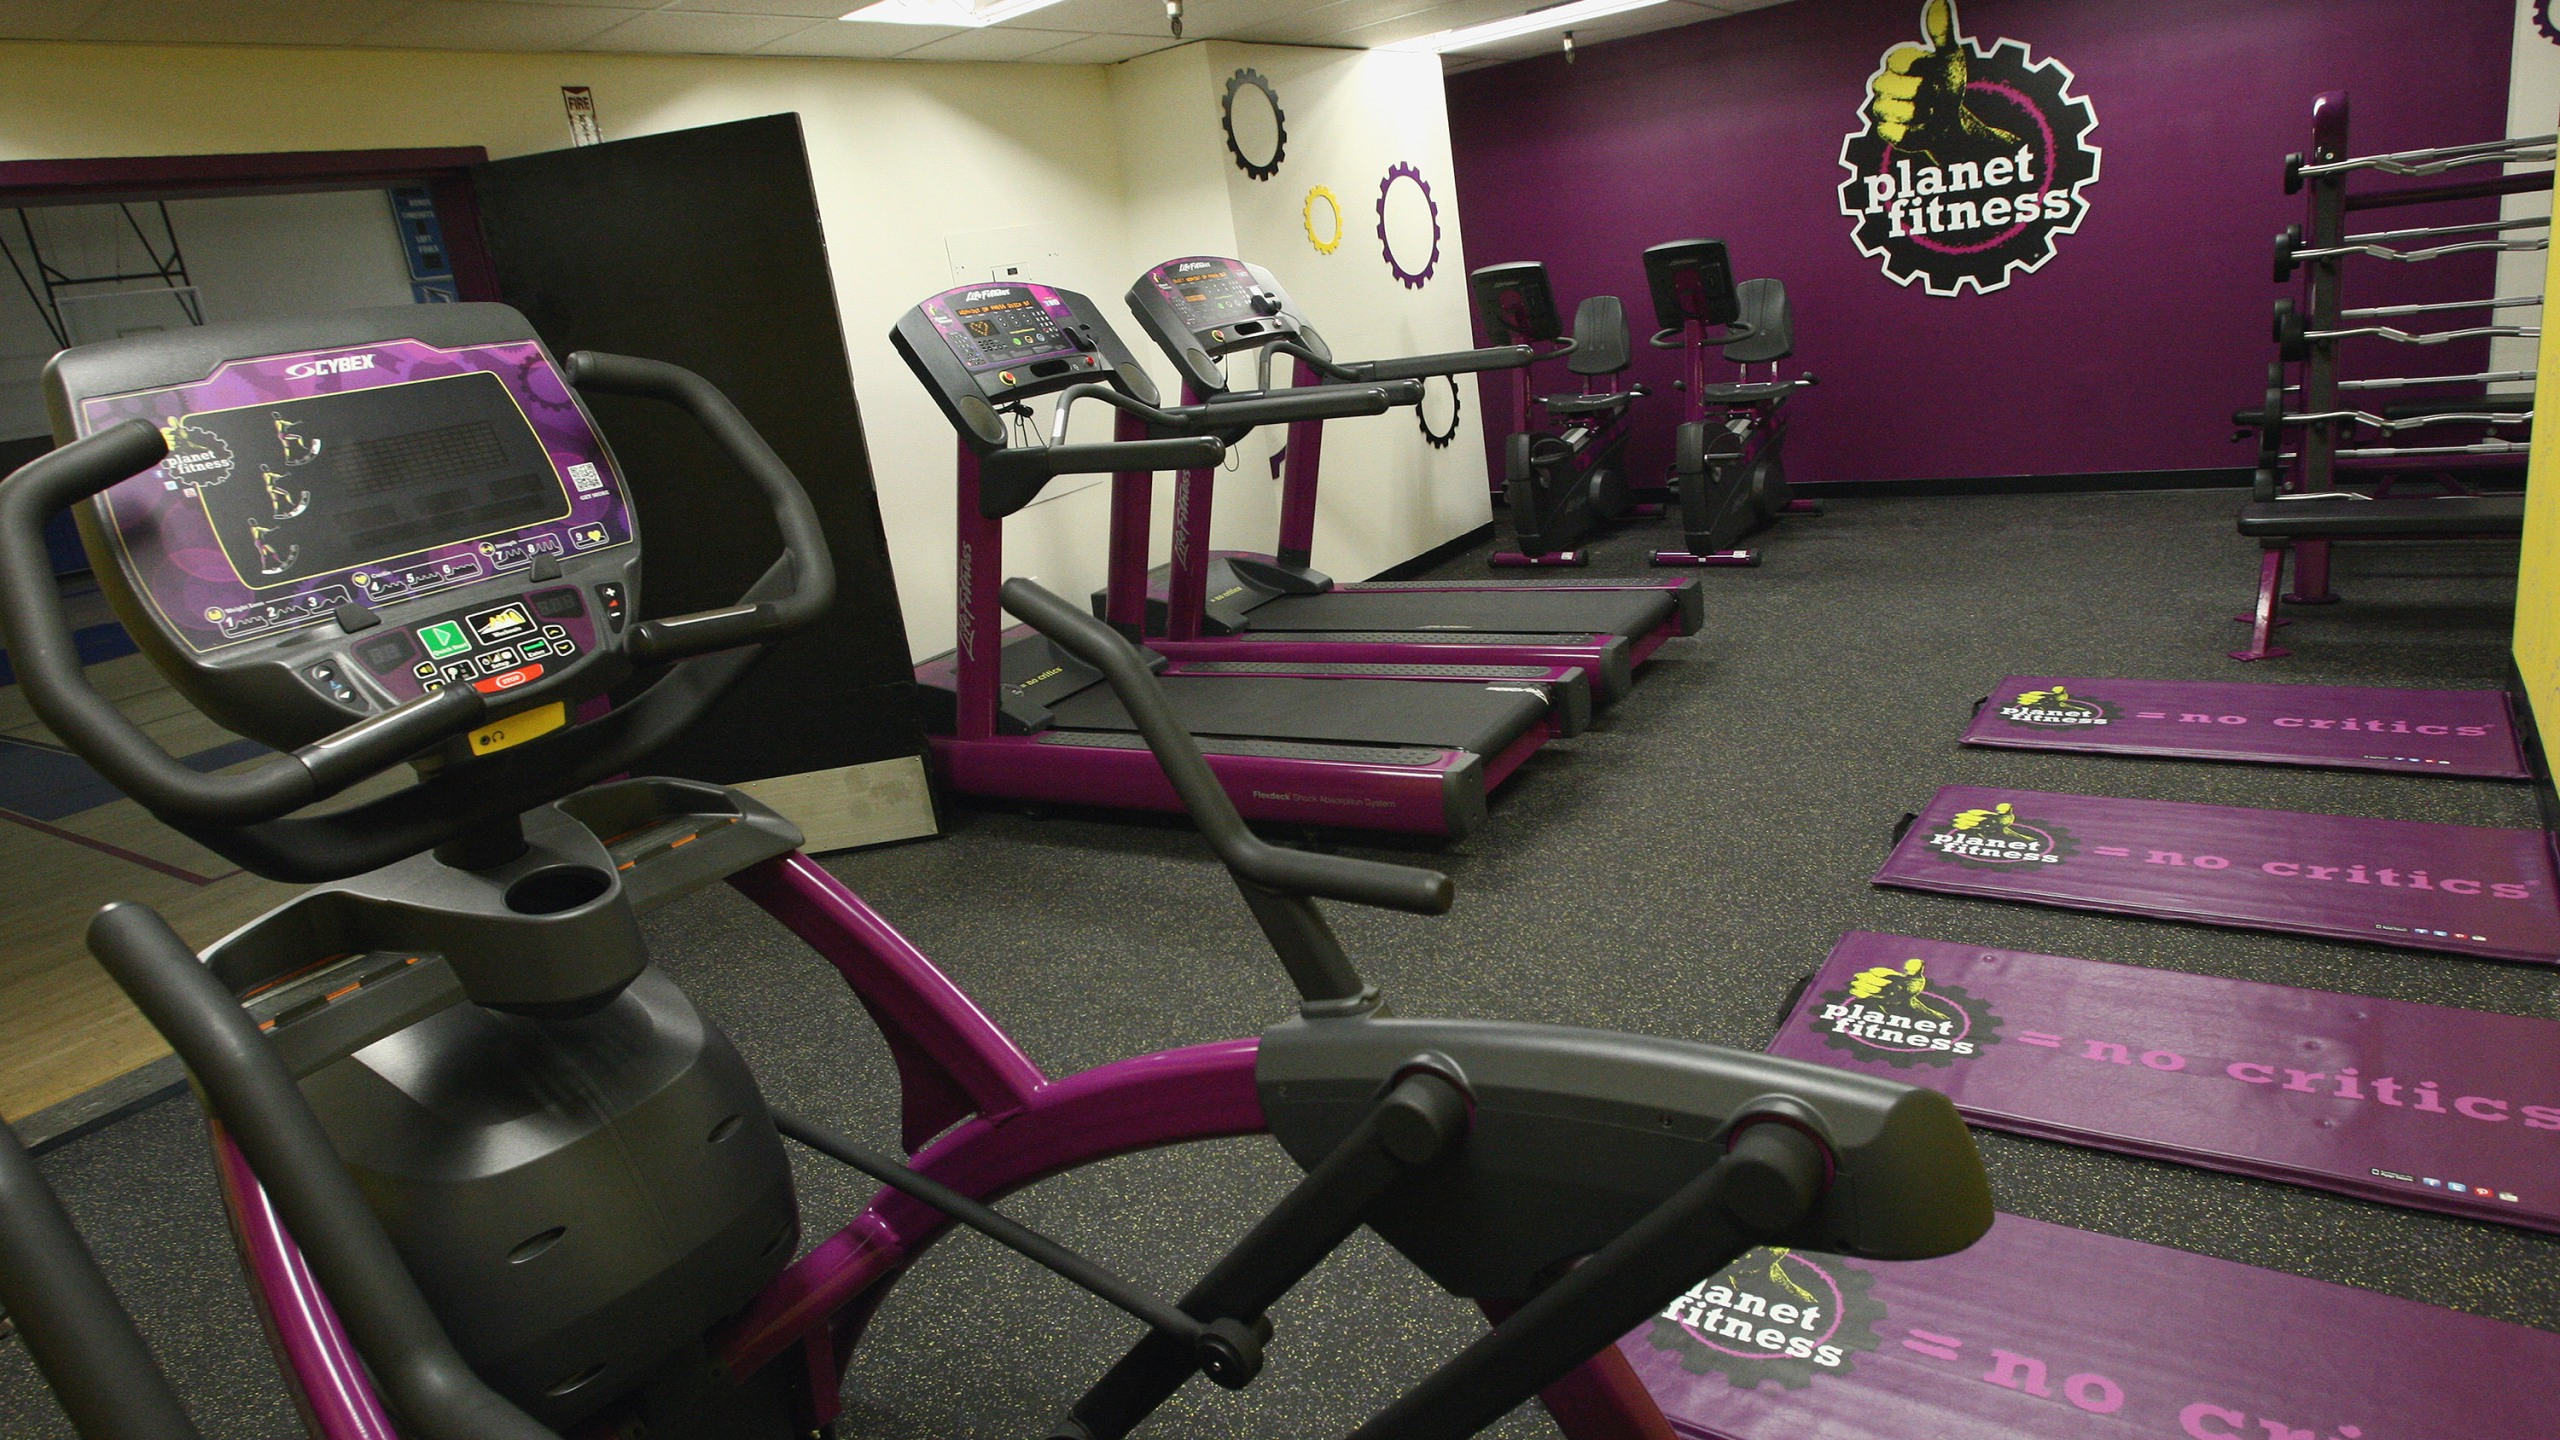 More than 200 urged to quarantine after possible COVID-19 exposure at gym